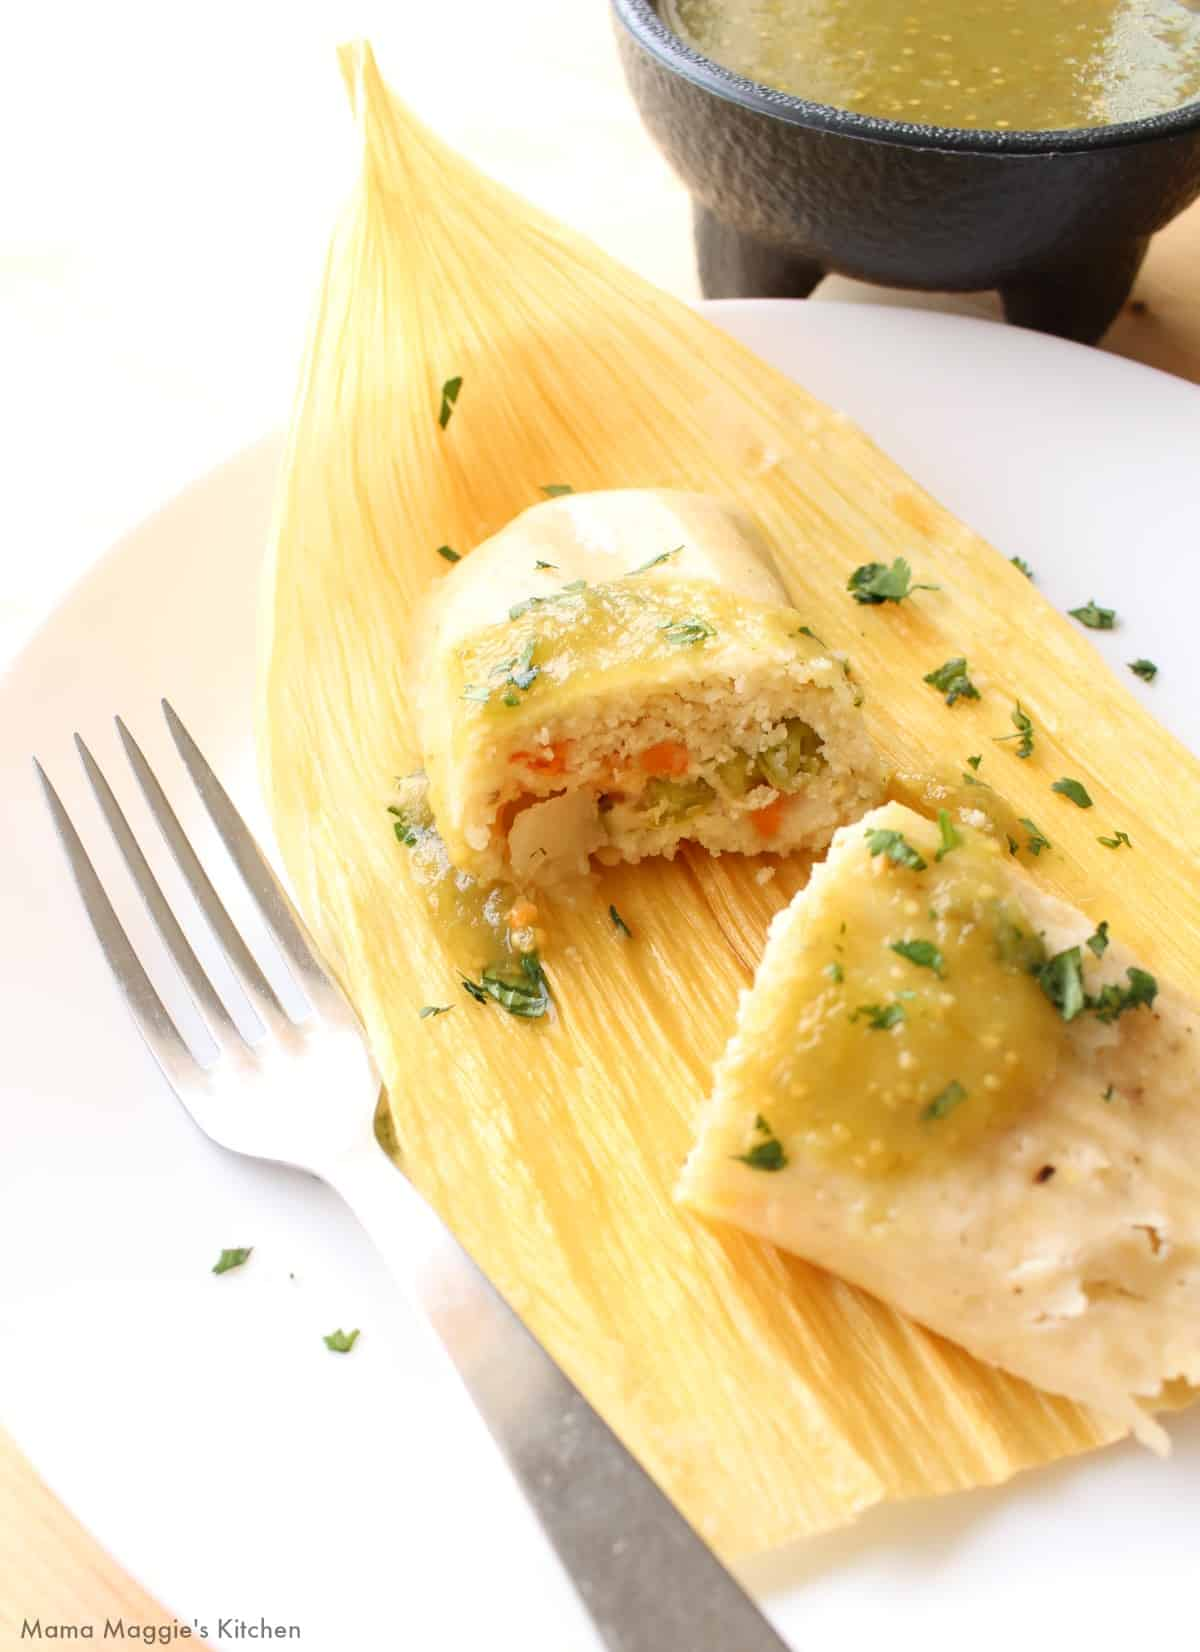 A vegetable tamal cut in half topped with salsa verde and chopped cilantro.